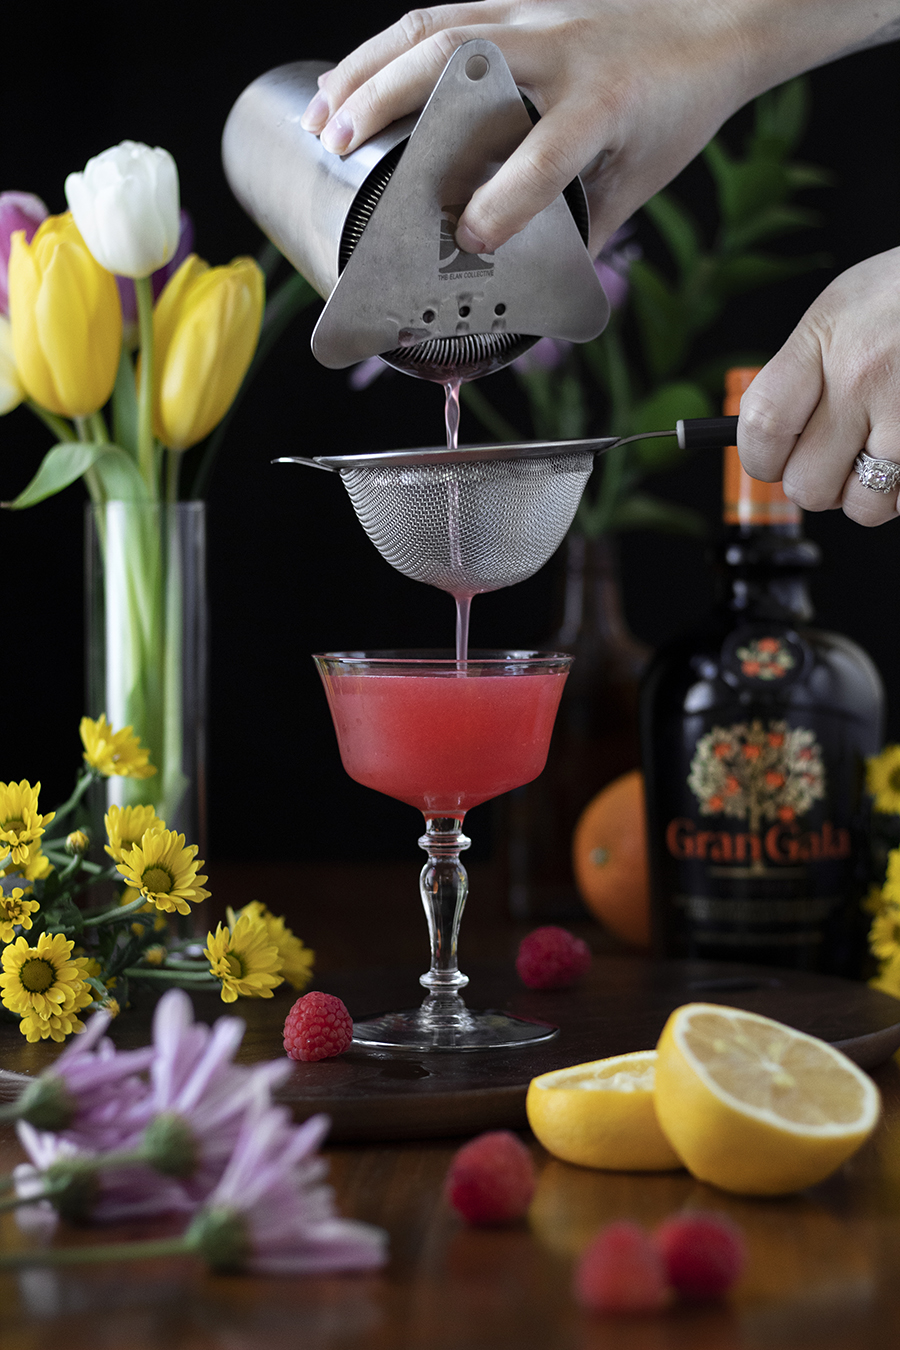 Spring Reviver cocktail recipe by Amy Traynor / Moody Mixologist